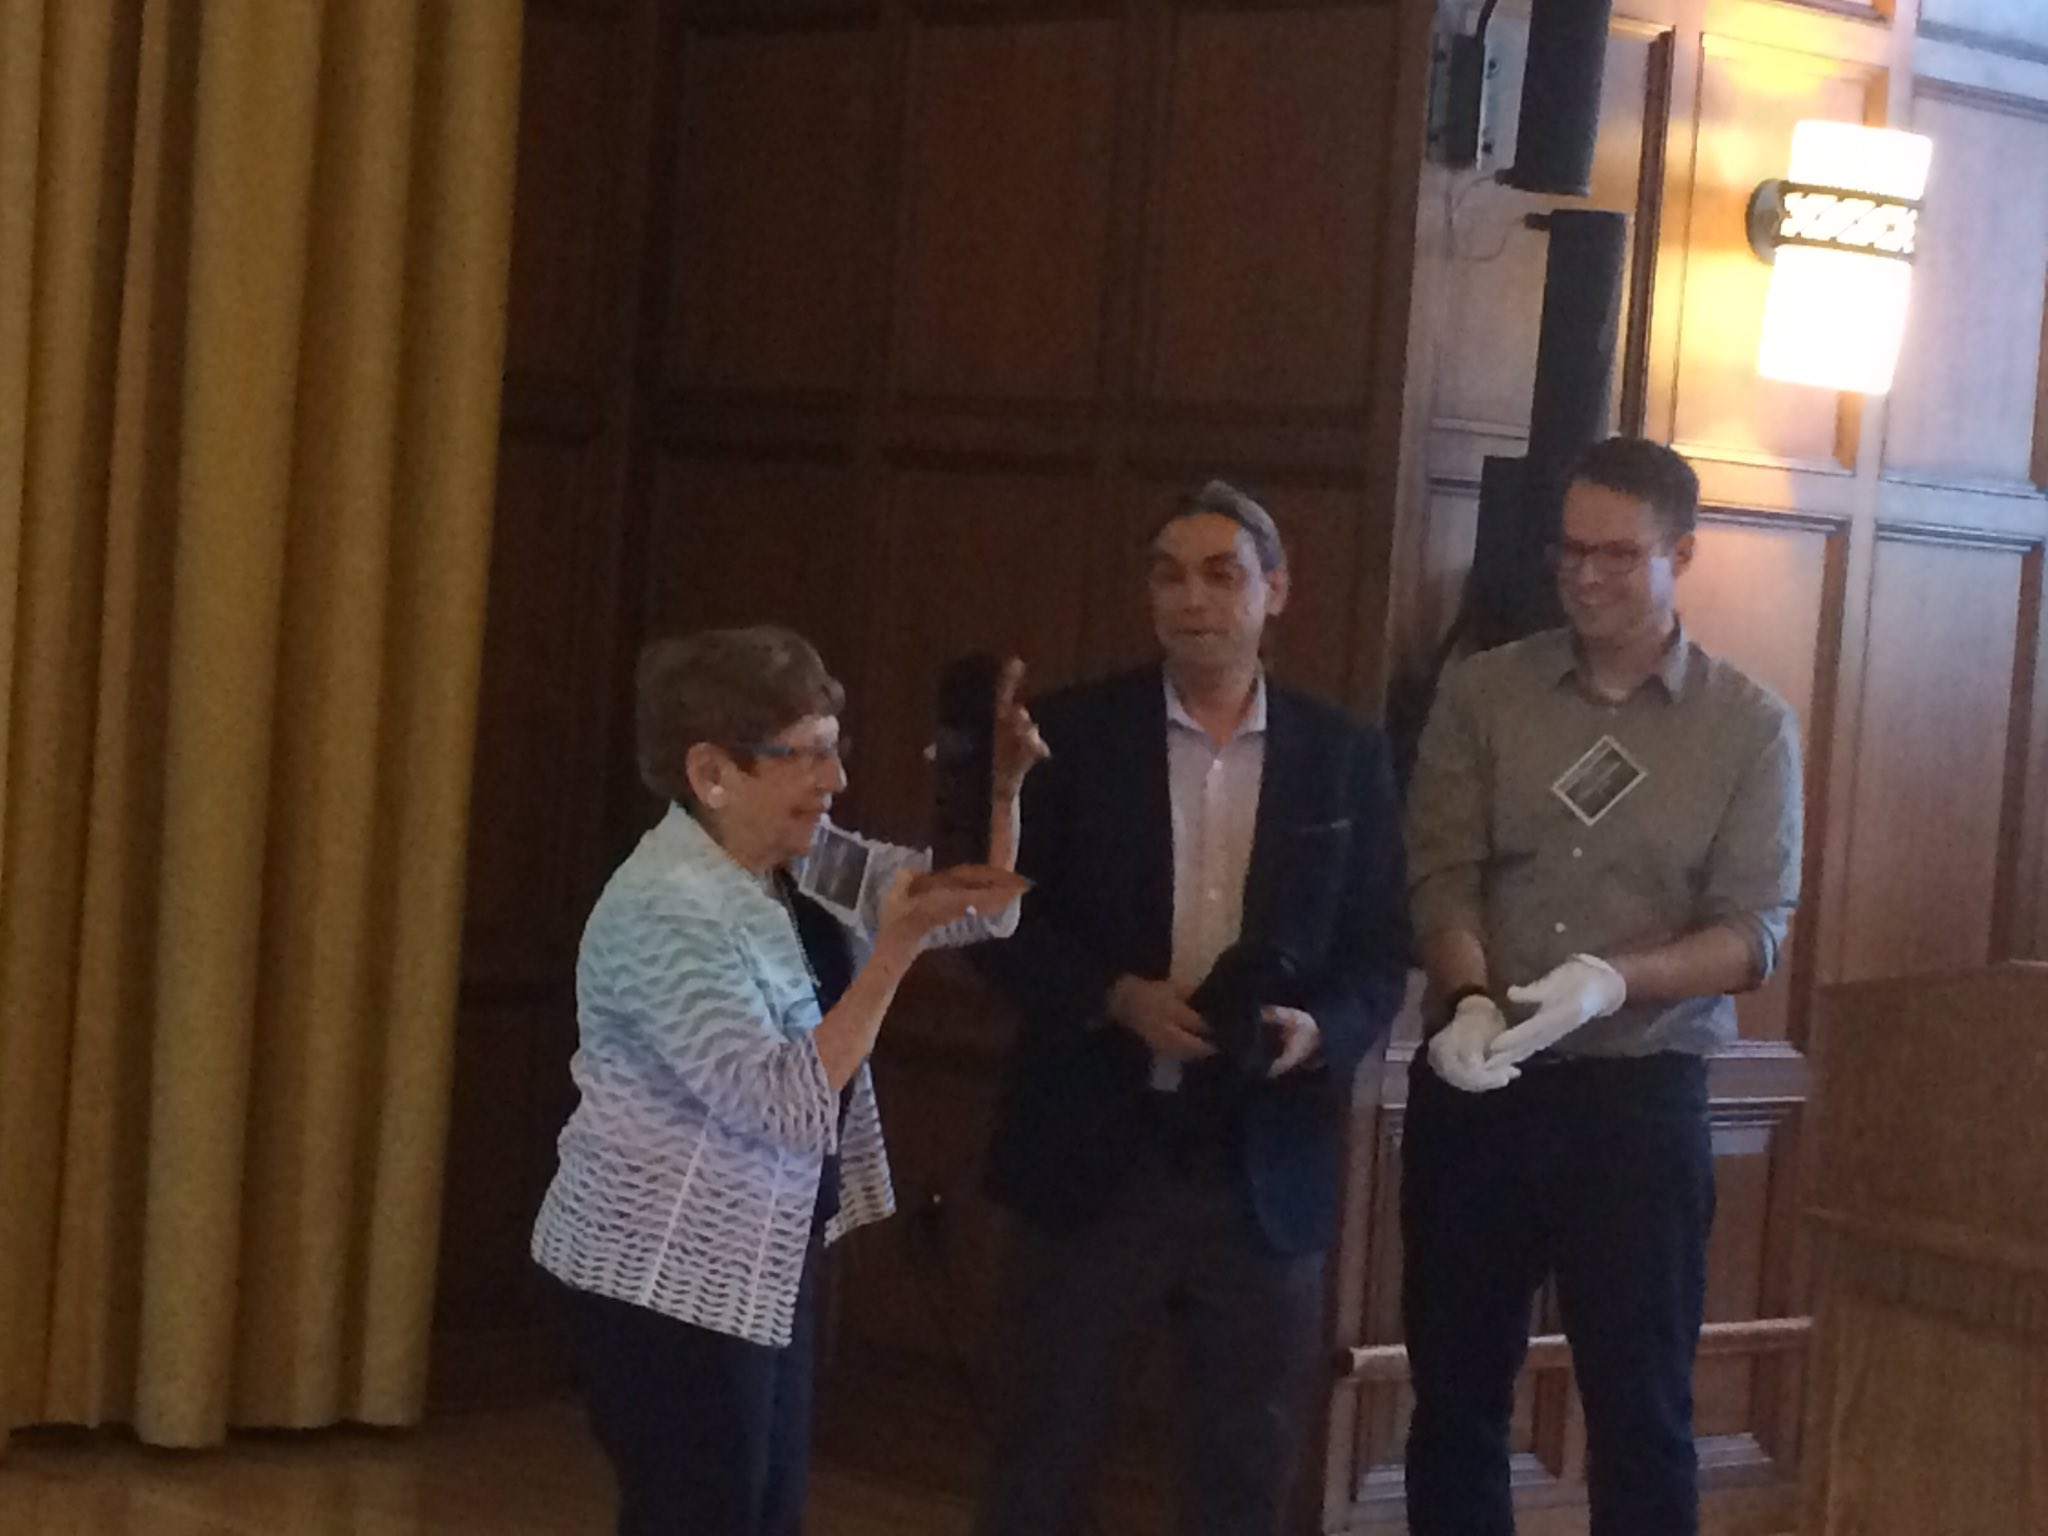 Dr. Margaret Kivelson receives the monolith award at the Europa PSG meeting. https://t.co/7laktHMGZ3